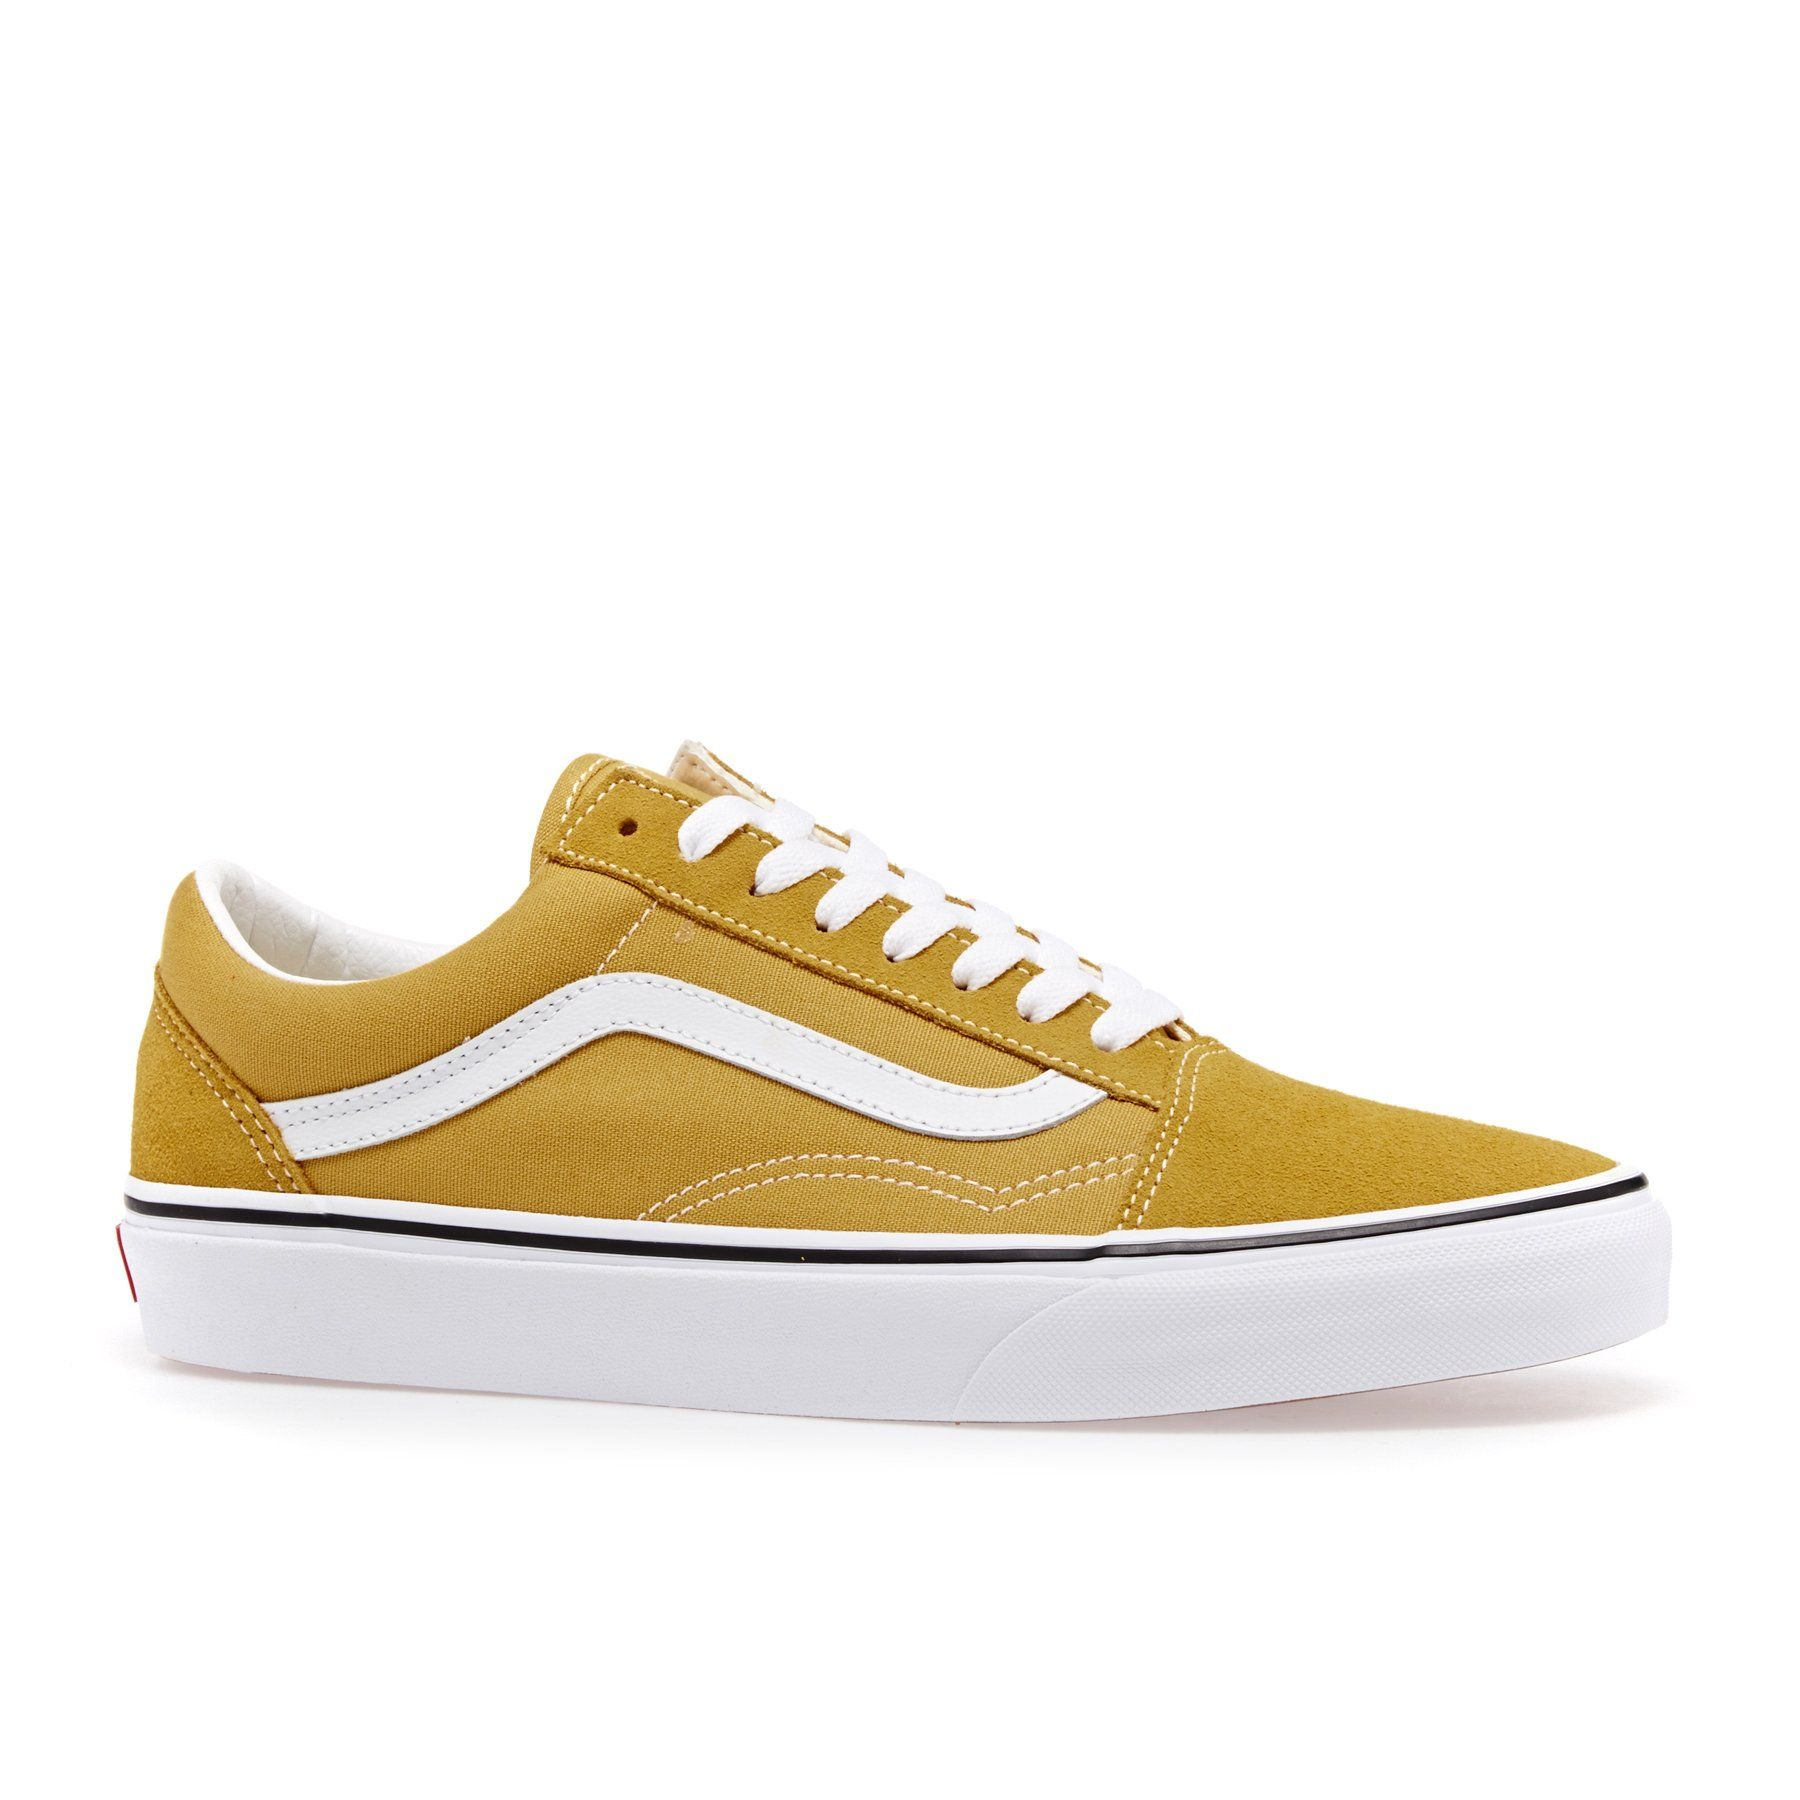 Vans Old Skool Shoes Free Delivery options on All Orders